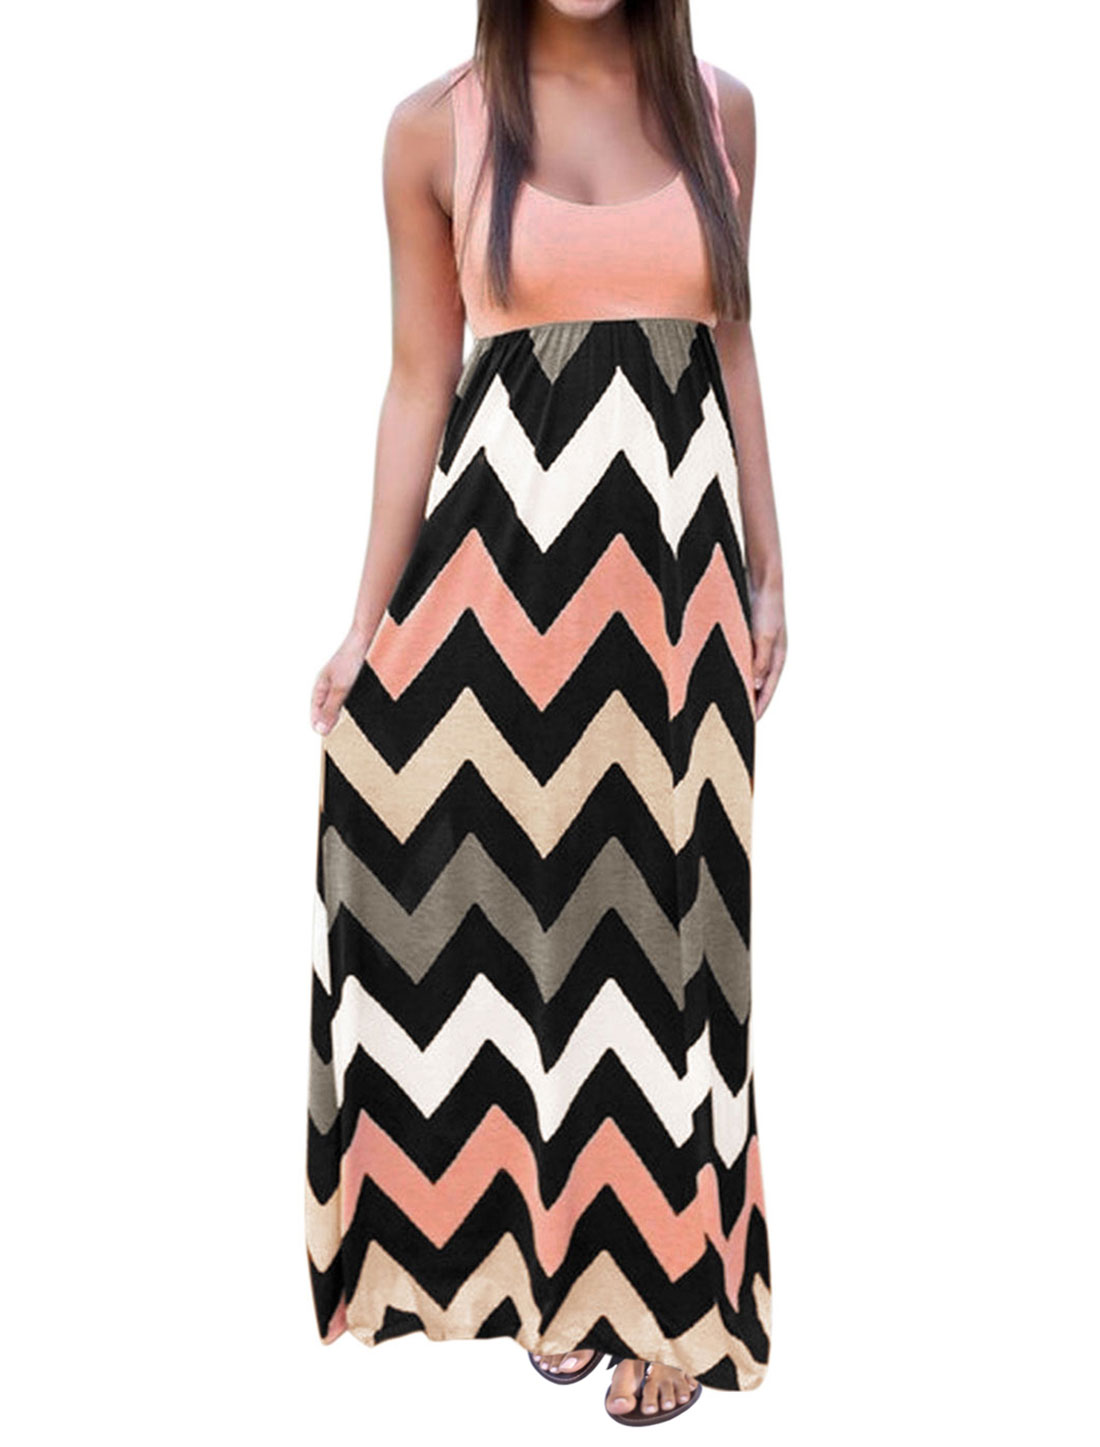 Women Sleeveless Scoop Neck Empire Waist Chevron Maxi Dress Pale Pink L